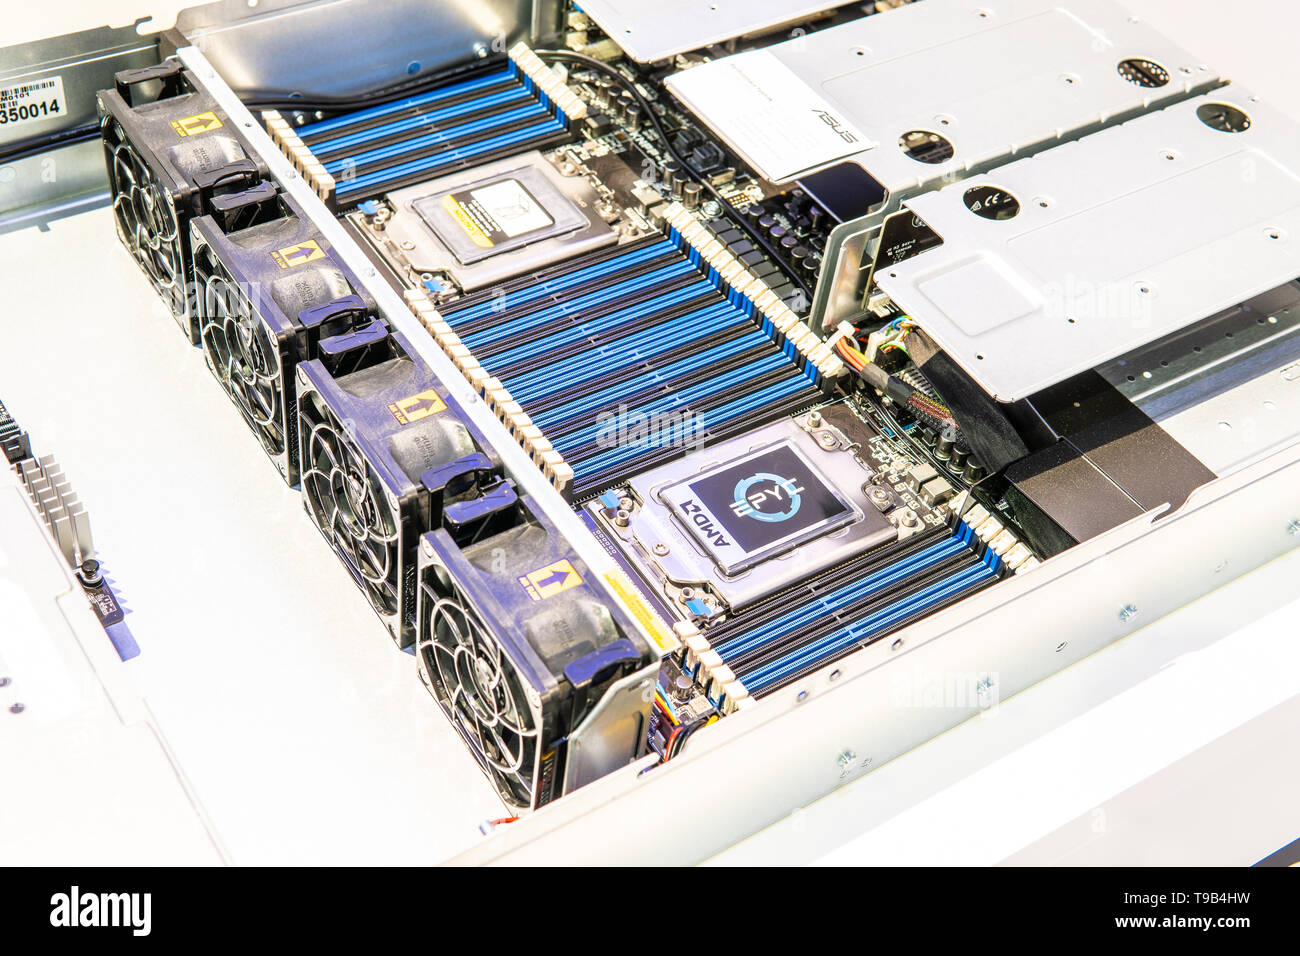 Berlin, Germany, August 31, 2018, Asus server with AMD Epyc CPU at AMD exhibition pavilion showroom, stand at Global Innovations Show IFA 2018 - Stock Image